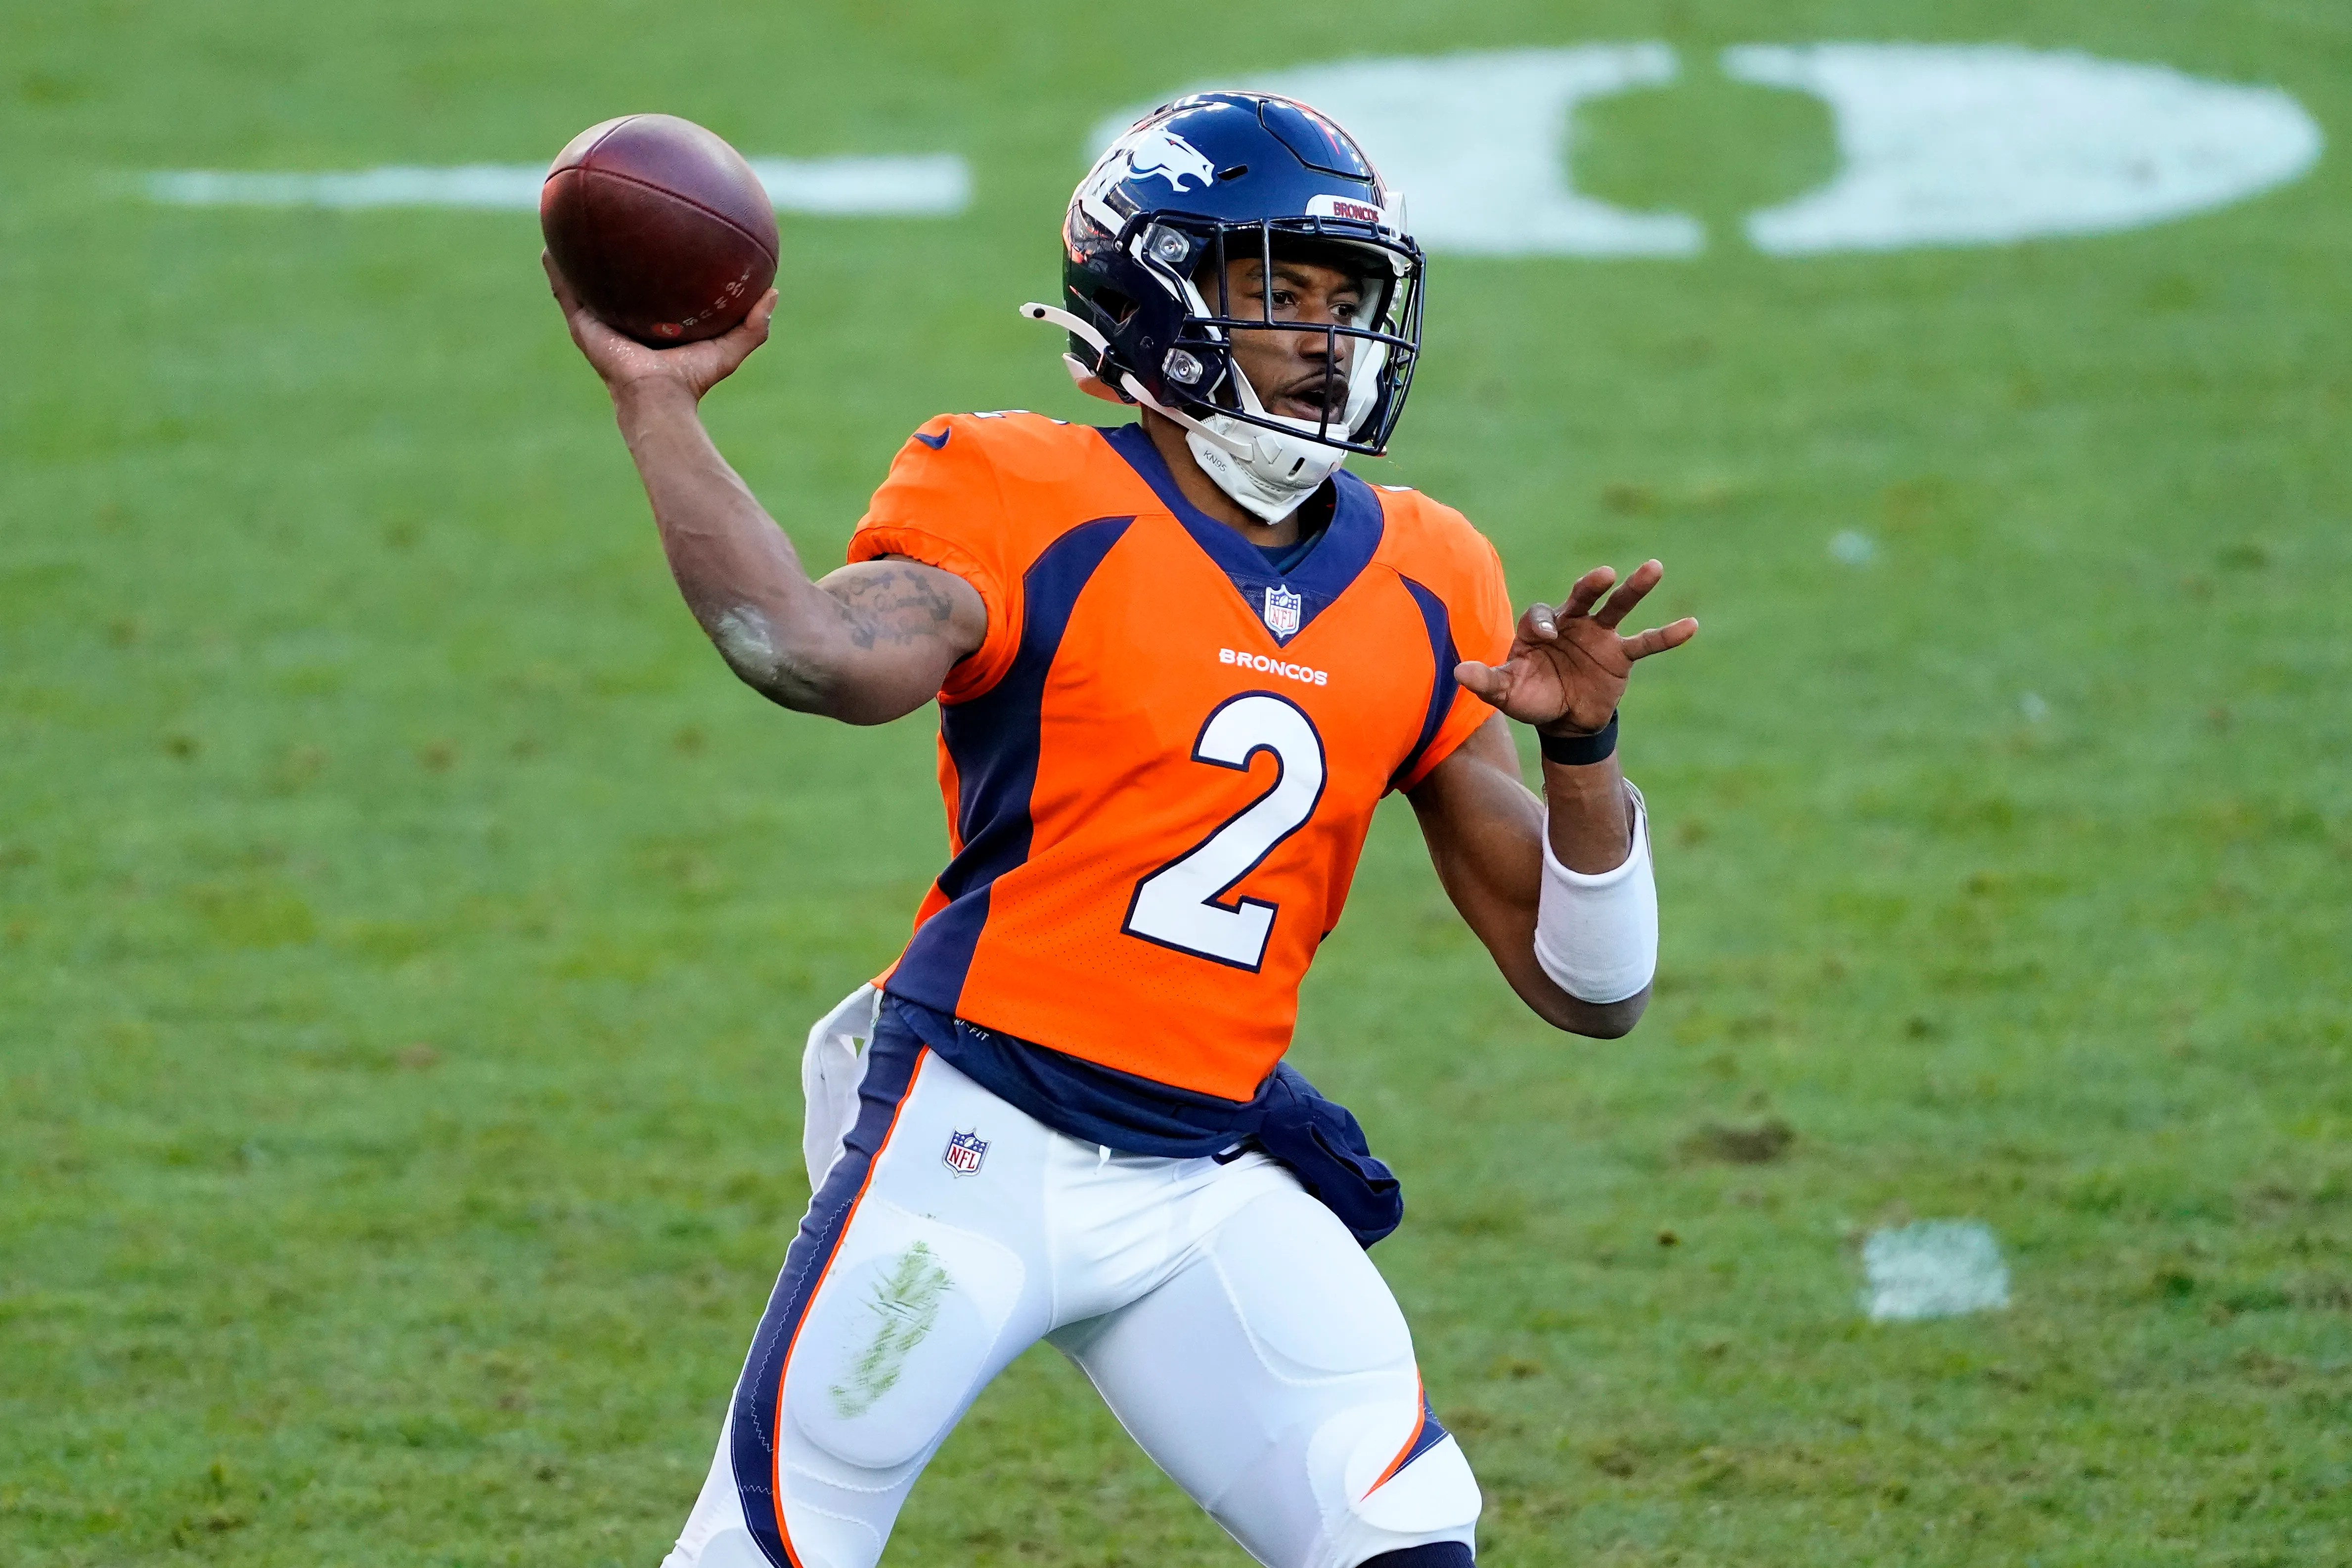 Denver Broncos quarterback Kendall Hinton (2) takes on the New Orleans Saints in the first half of an NFL football game on Sunday, November 29, 2020, in Denver.